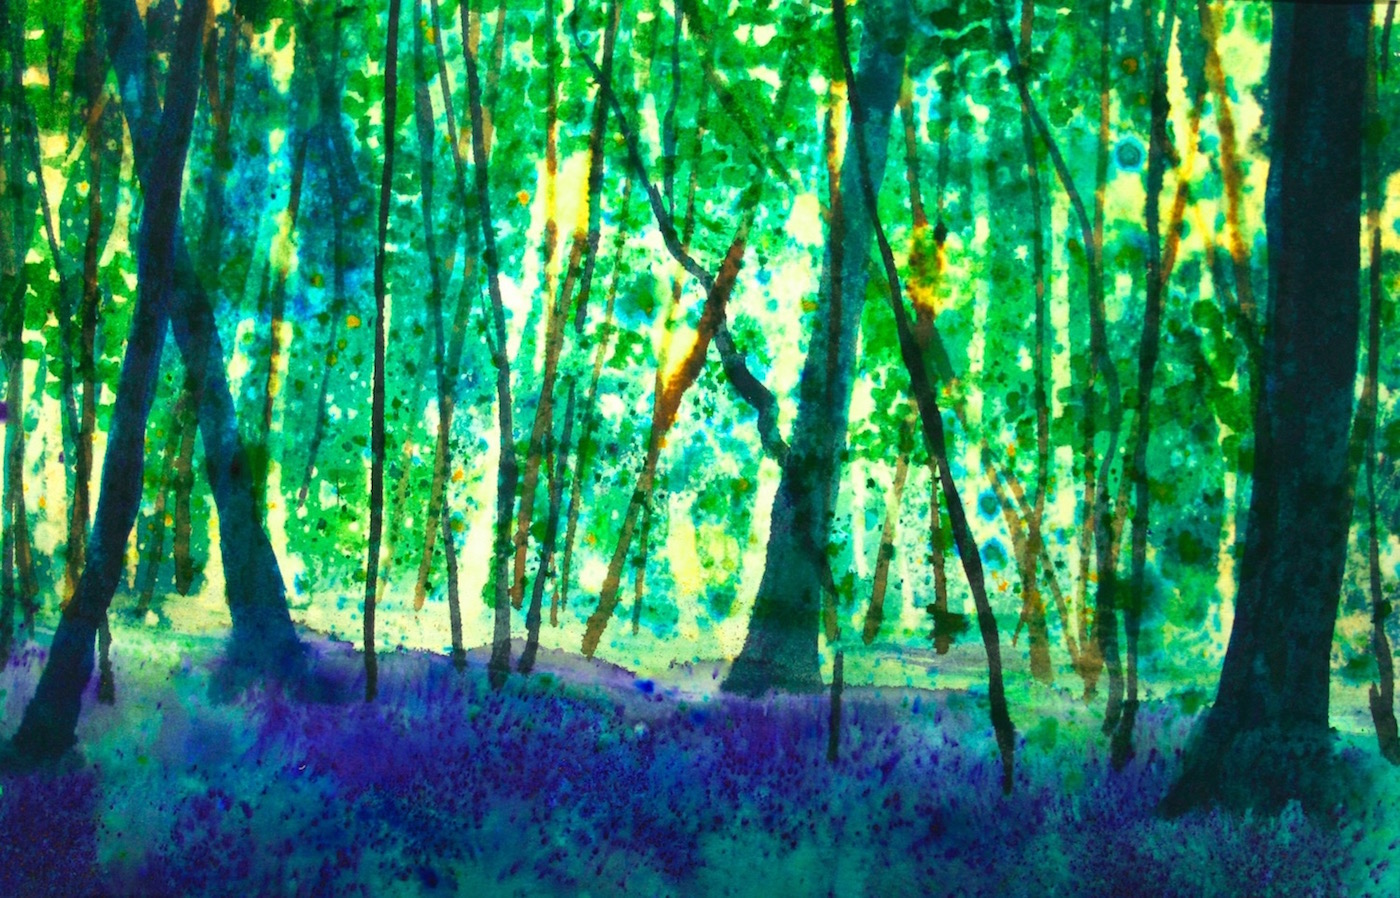 Woodland scene using Brush